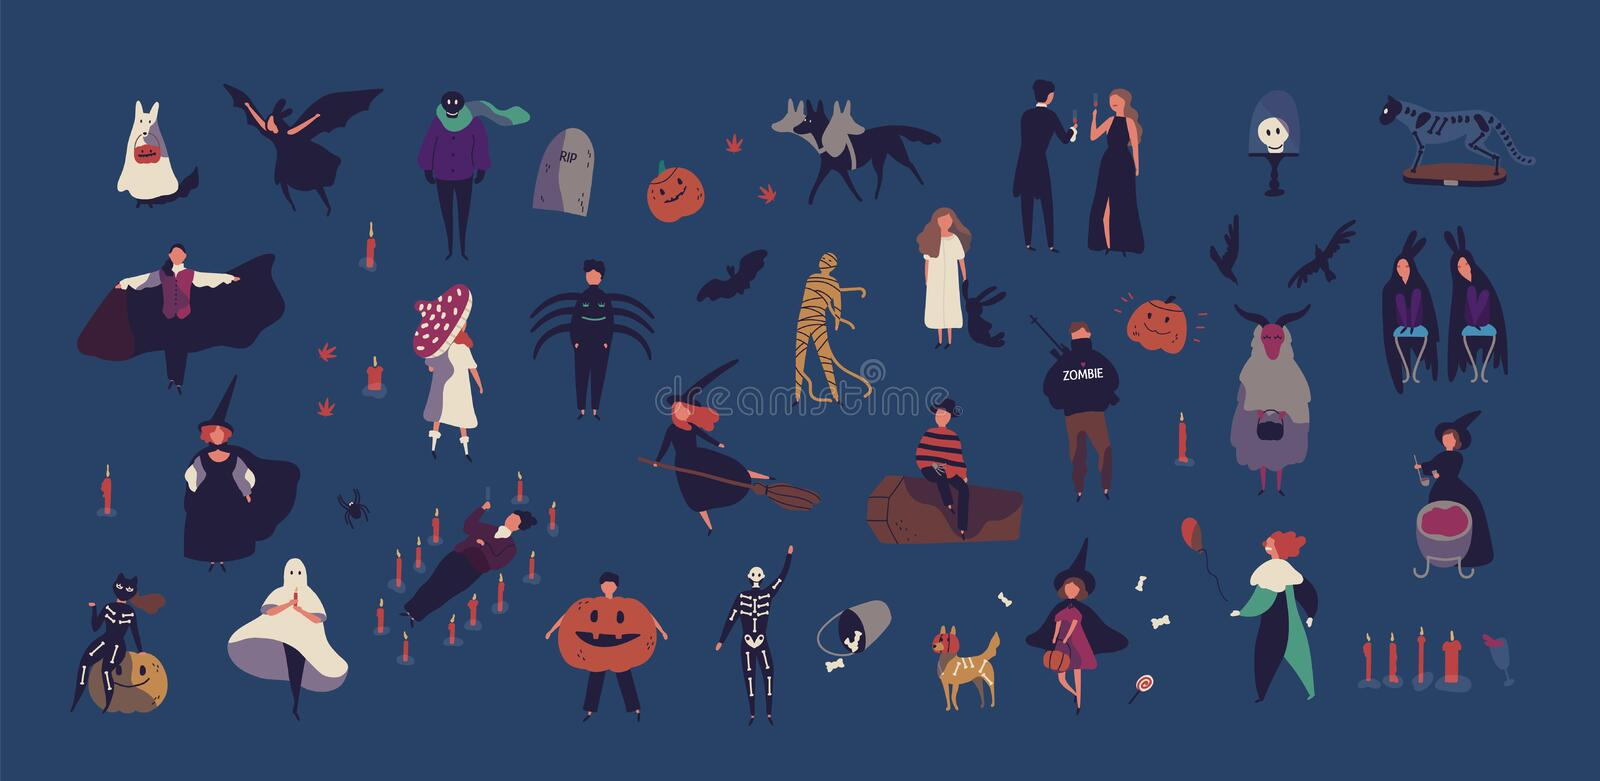 Crowd of tiny people dressed in various Halloween costumes isolated on dark background. Male and female cartoon. Characters at party or masquerade ball vector illustration